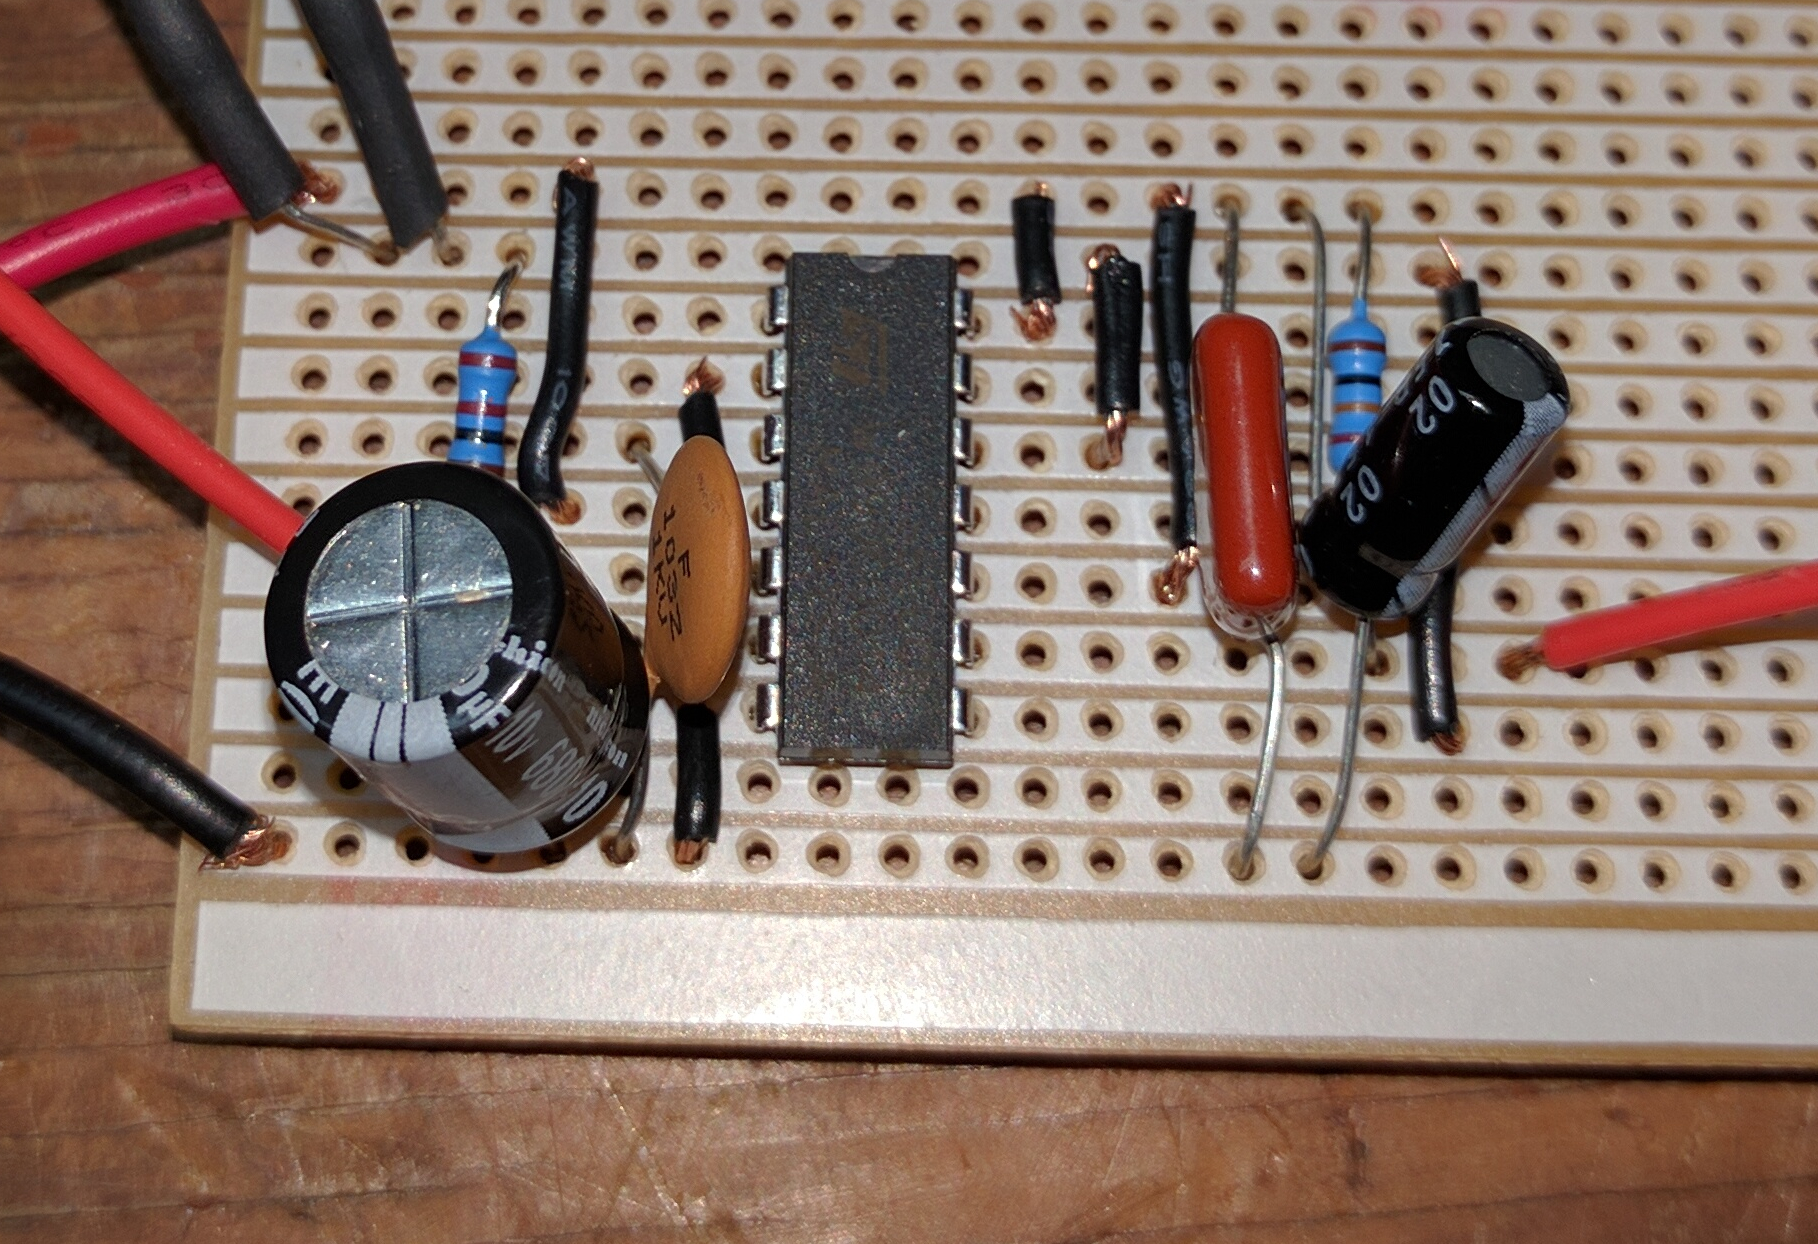 Diy Fan Controller For Pwm Fans Archive Overclockers Forums Ac Speed Control Electronics Forum Circuits Projects And